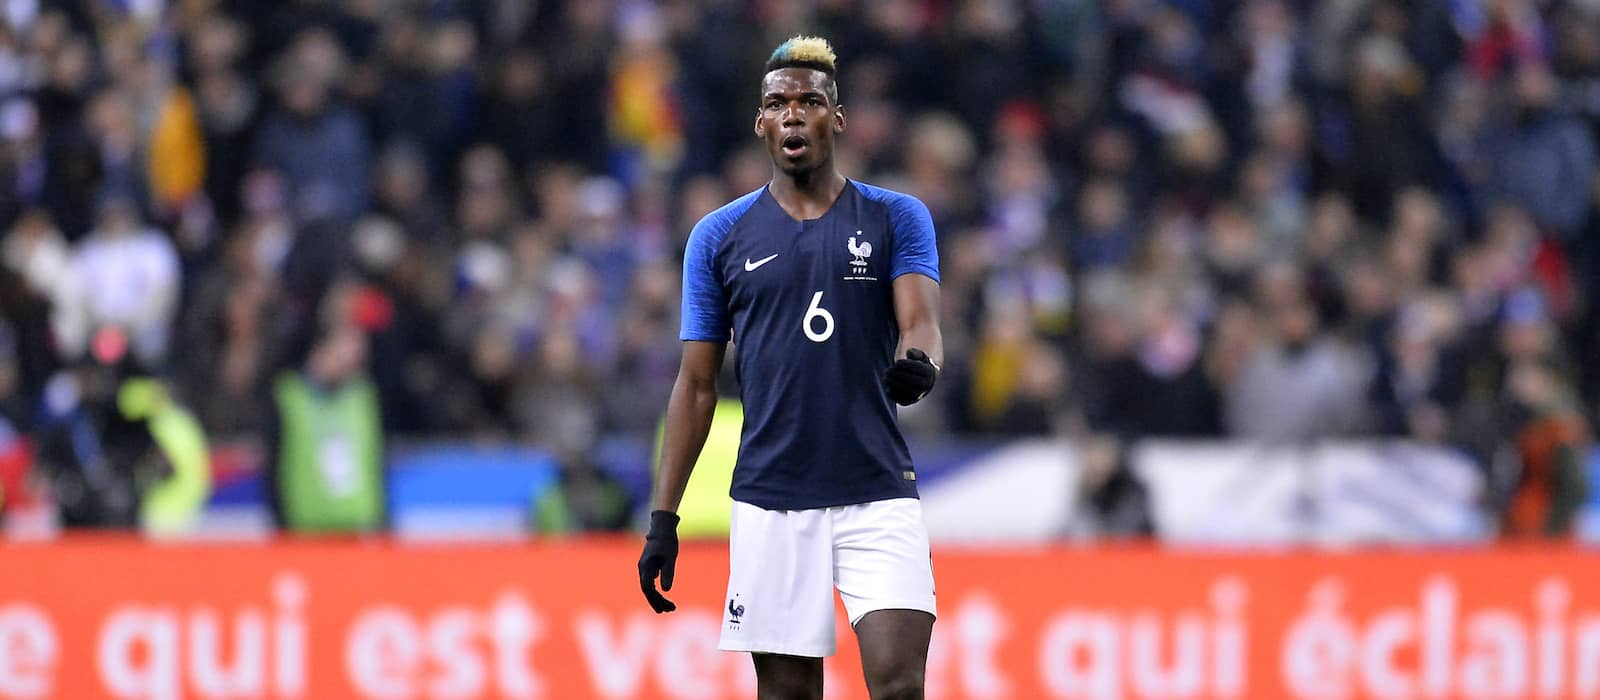 Rio Ferdinand: There was a maturity to Paul Pogba's game